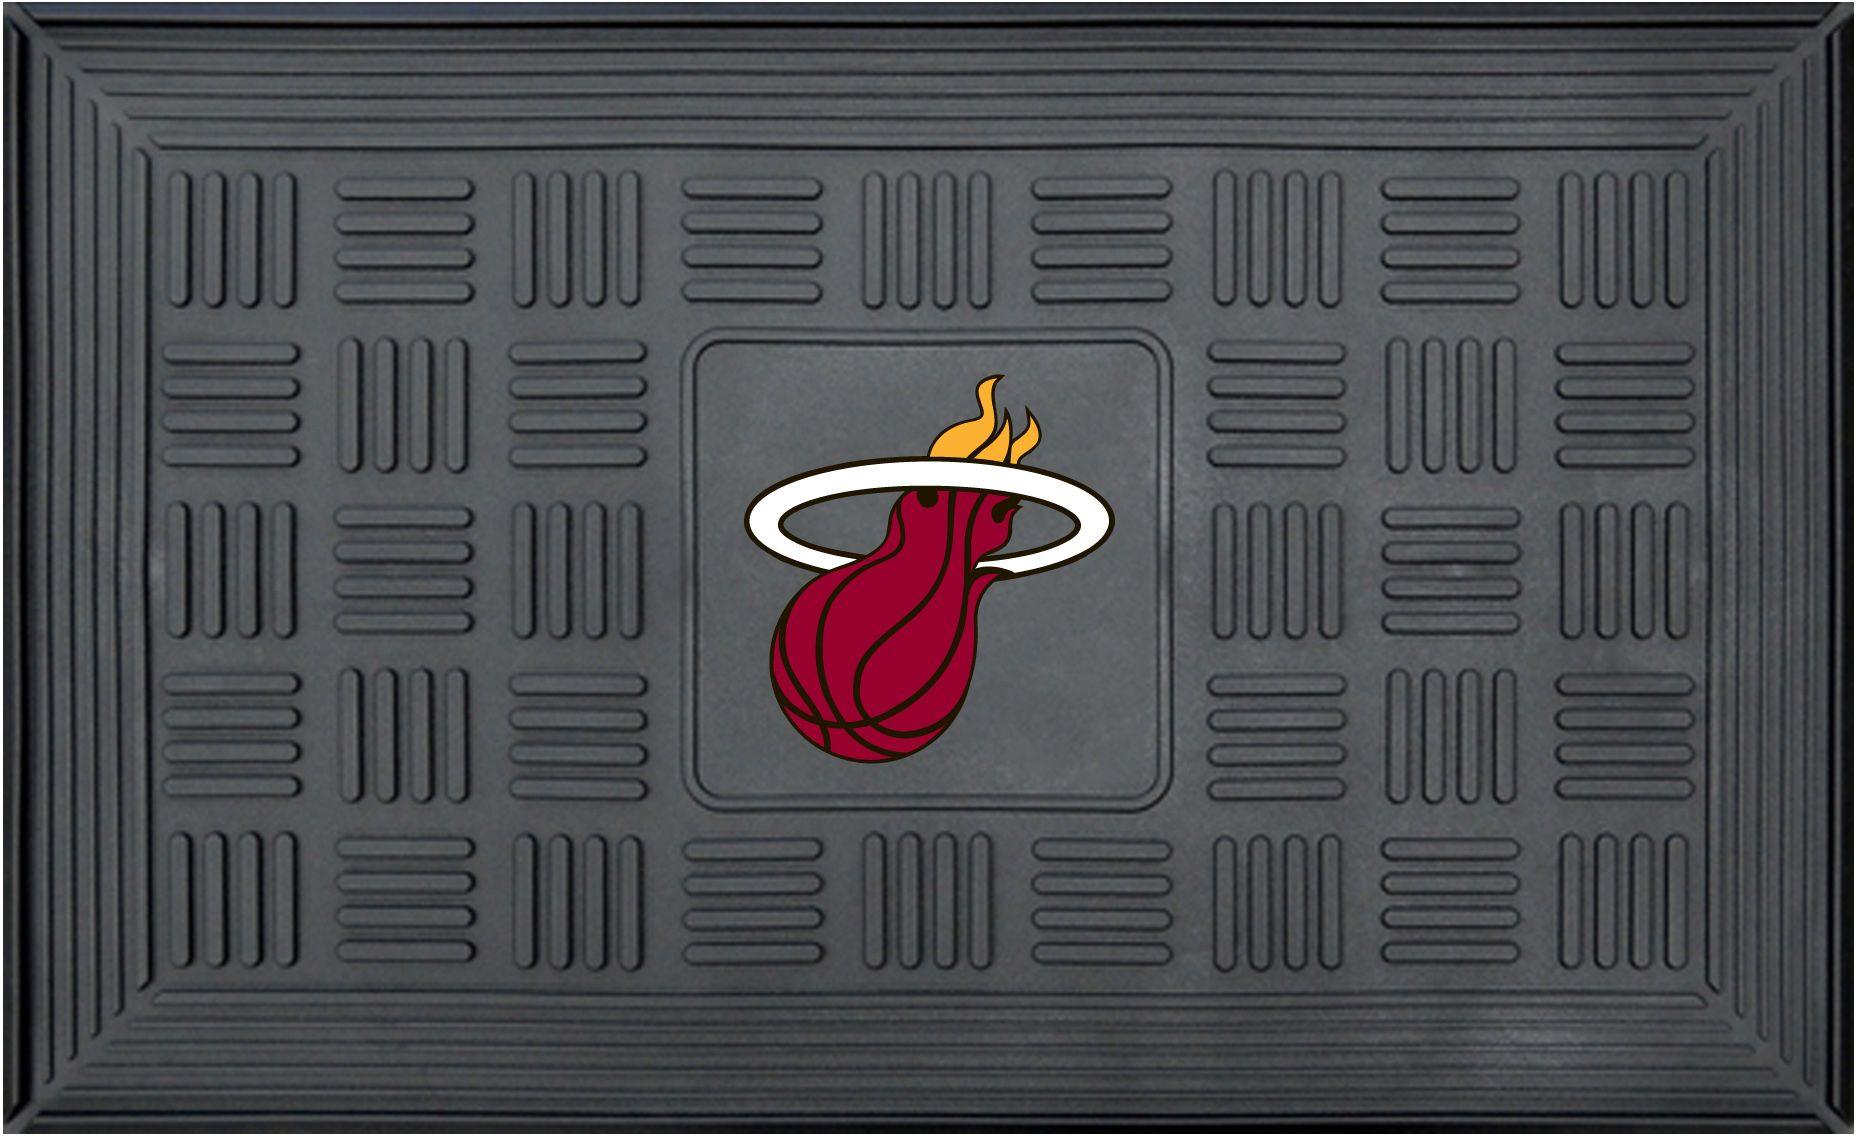 945e9e59 FANMATS Miami Heat Door Mat | DICK'S Sporting GoodsProposition 65 ...